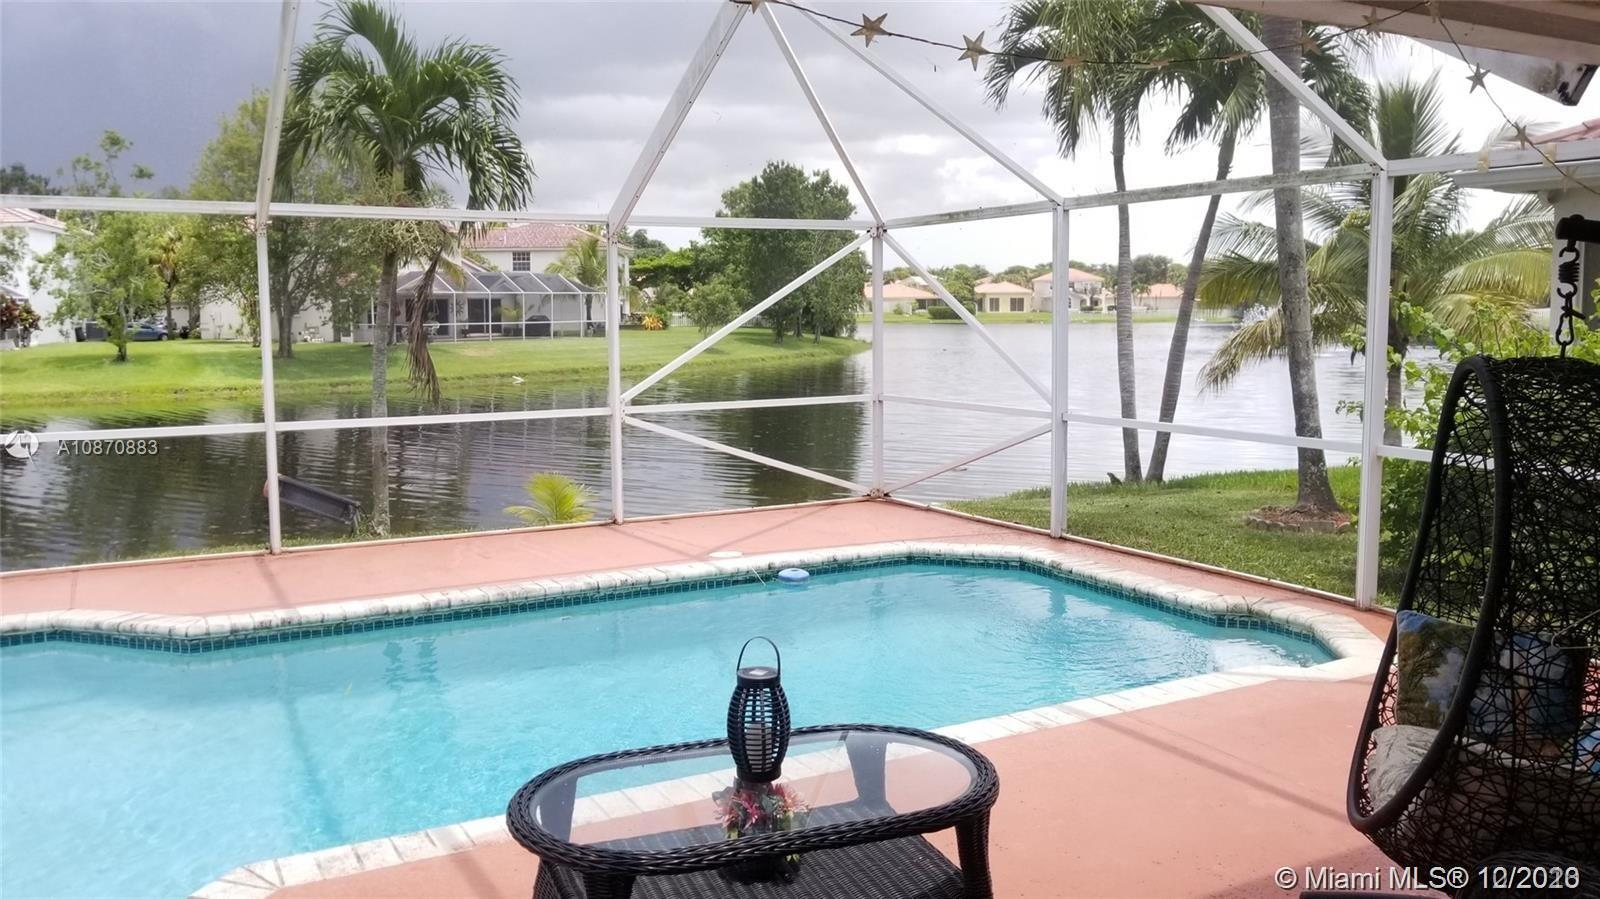 Perfect Location- very close to Sawgrass mall, shopping, dinning, major expressways and much more. Beautiful home to make your own with 3bd, 2 ½ baths.  Master bedroom downstairs, loft and 2 more bedrooms upstairs. Great ample spaces, living room, dining room, family room and even quaint breakfast area with serene lake views. Wood and tile floors thru out the house.  Fantastic pool & spa in screened patio, perfect for entertaining.   All Stainless steel kitchen appliances, washer and dryer were replaced in 2019 and New high efficiency air conditioning.  Accordion hurricane shutters.